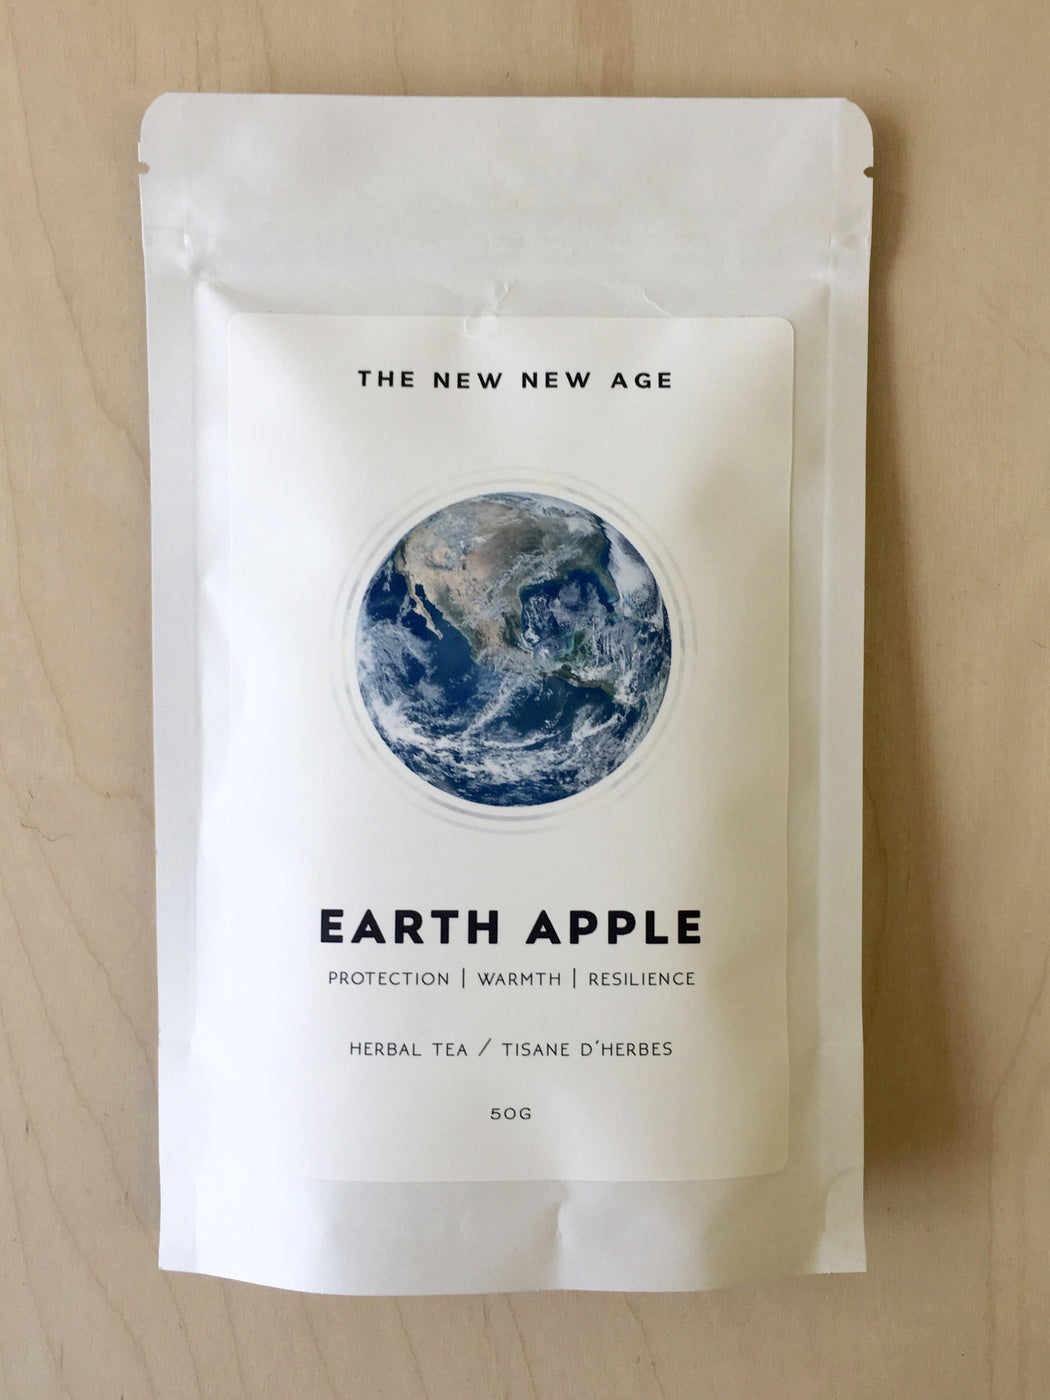 The New New Age - Earth Apple